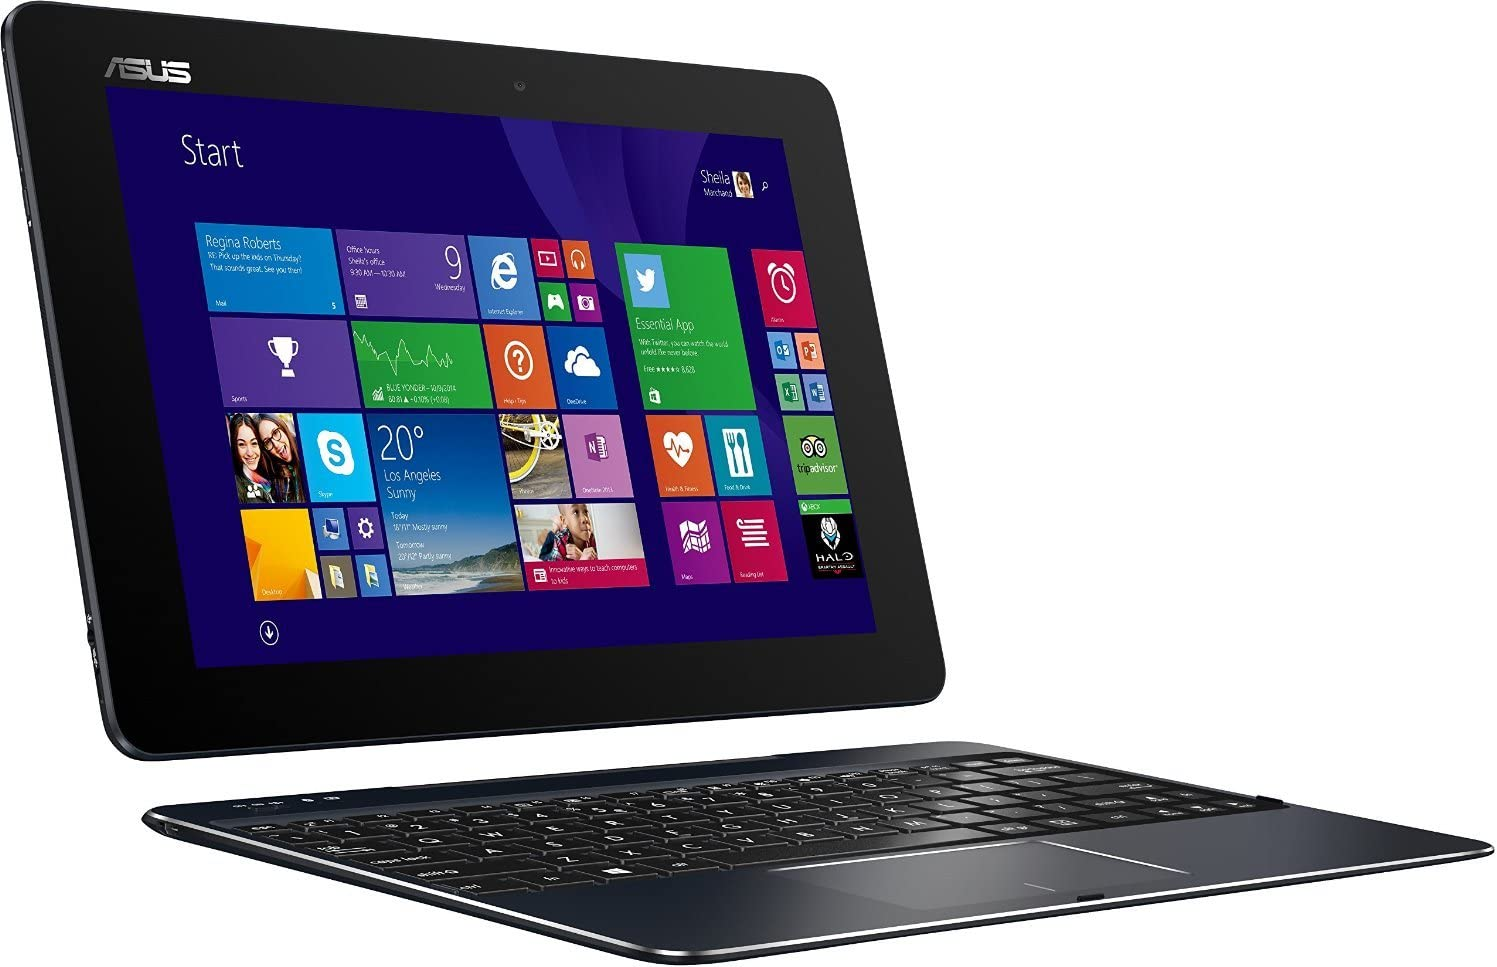 "Asus Transformer Book T100-CHI-C1-BK(M) - 10.1"" 2-in-1 Laptop/Tablet Combo - Intel Atom Z3775/2GB RAM/64GB eMMC/Intel HD Graphics/Windows 8.1 - Dark Blue"